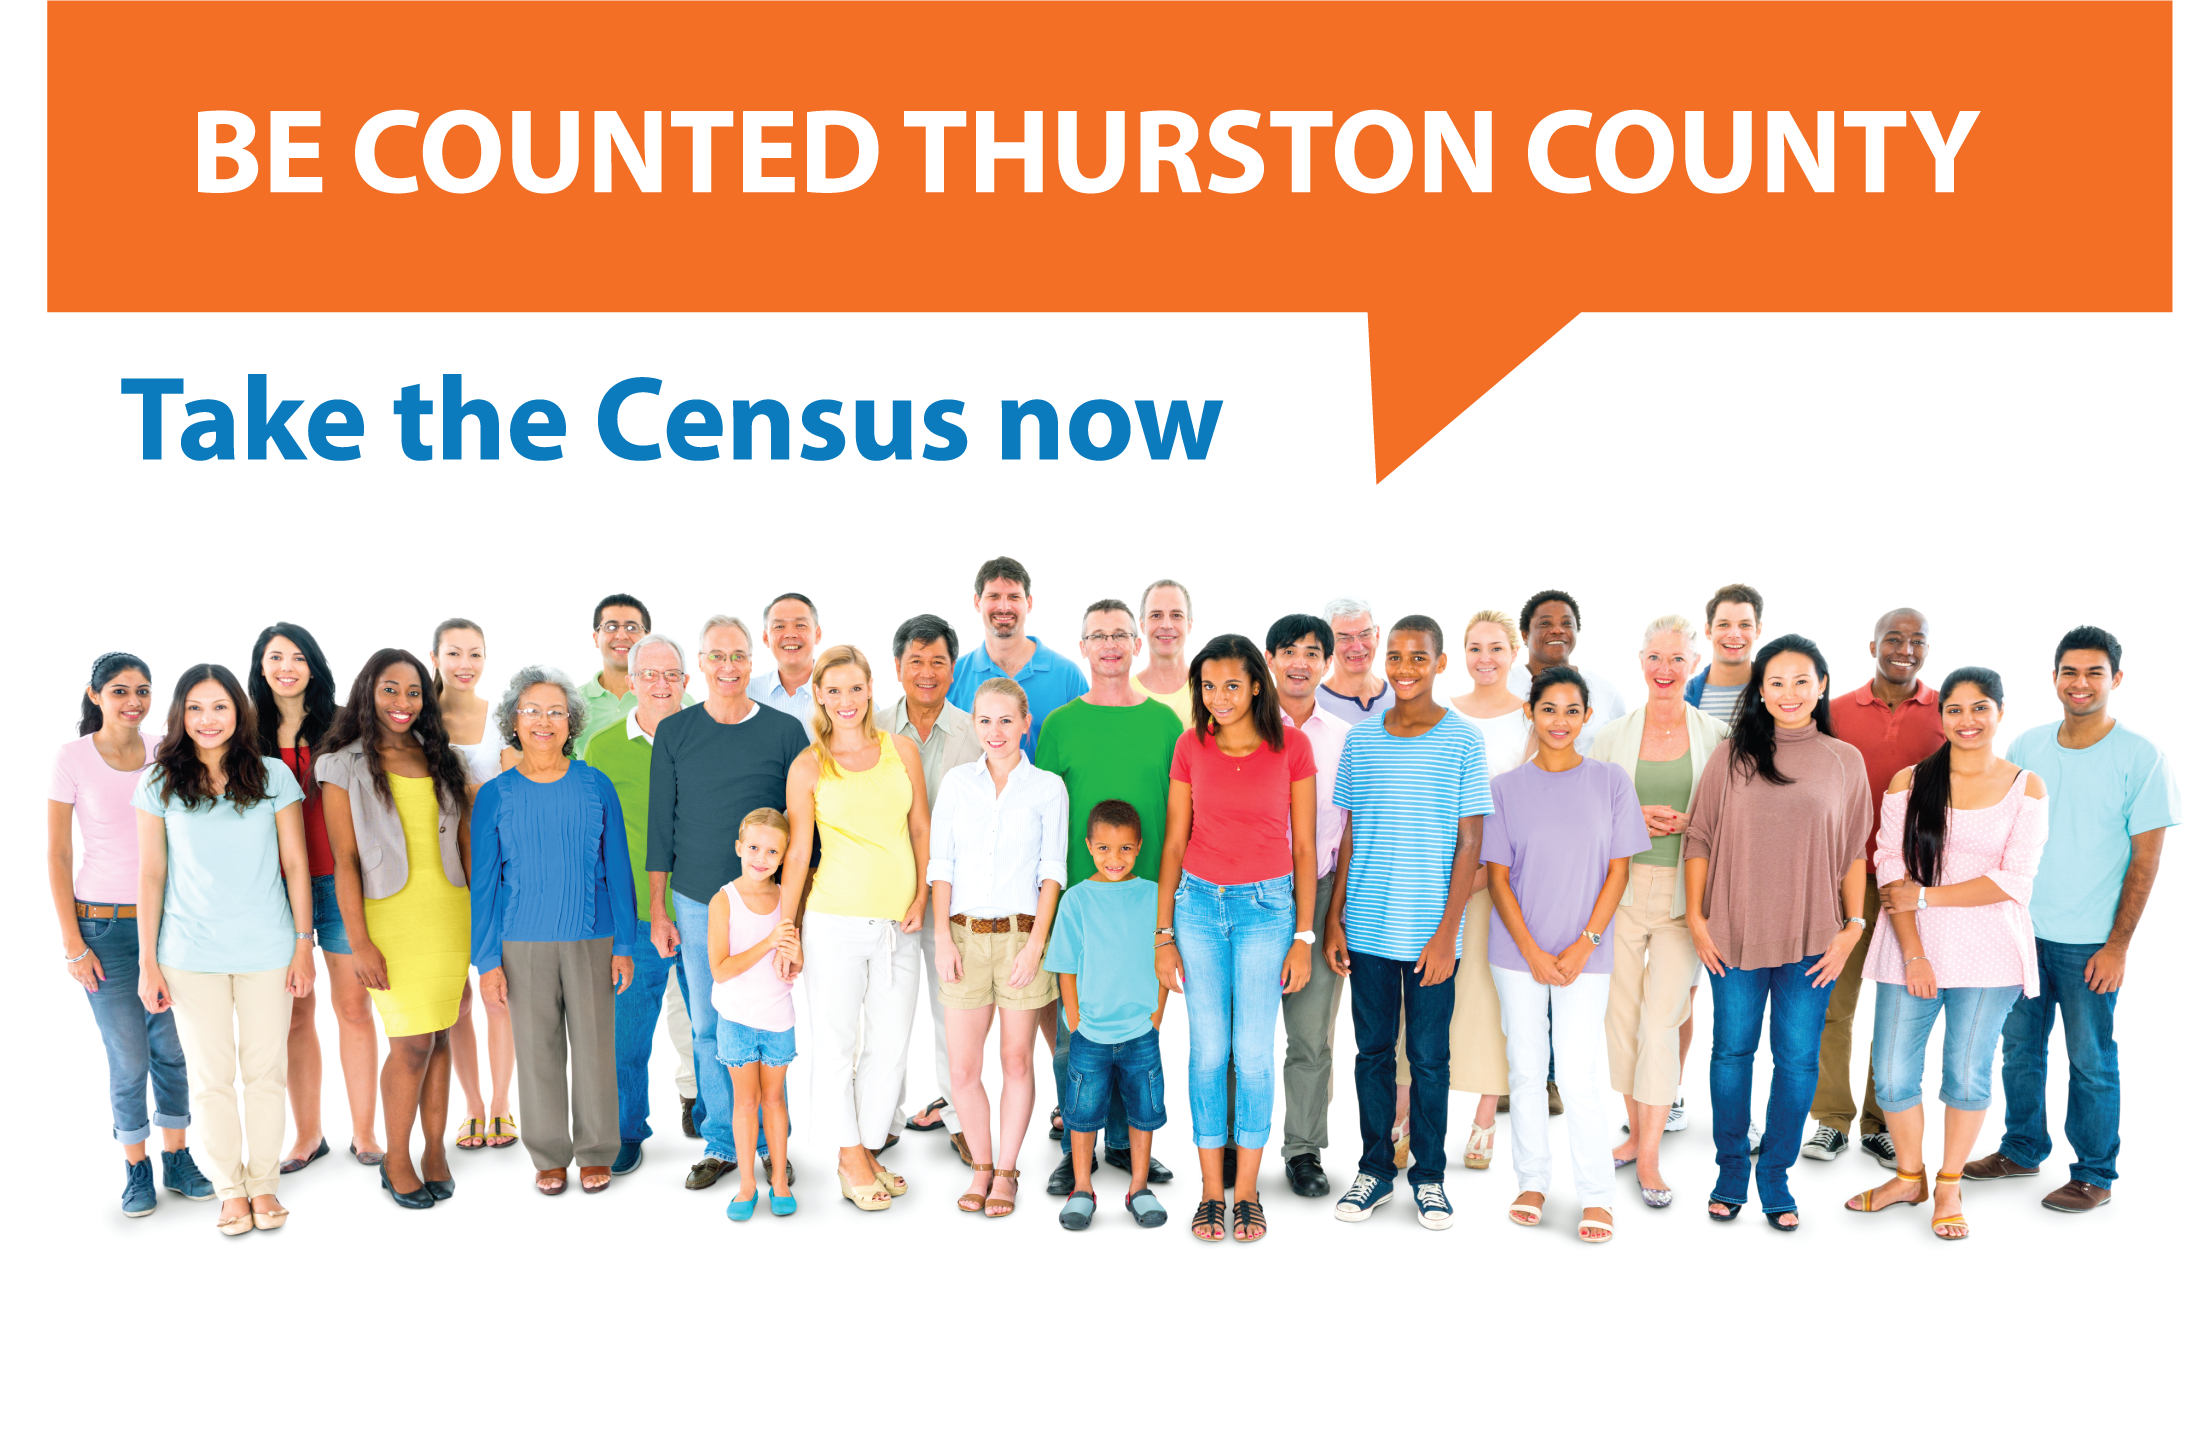 LINK: Be Counted Thurston County, take the census now